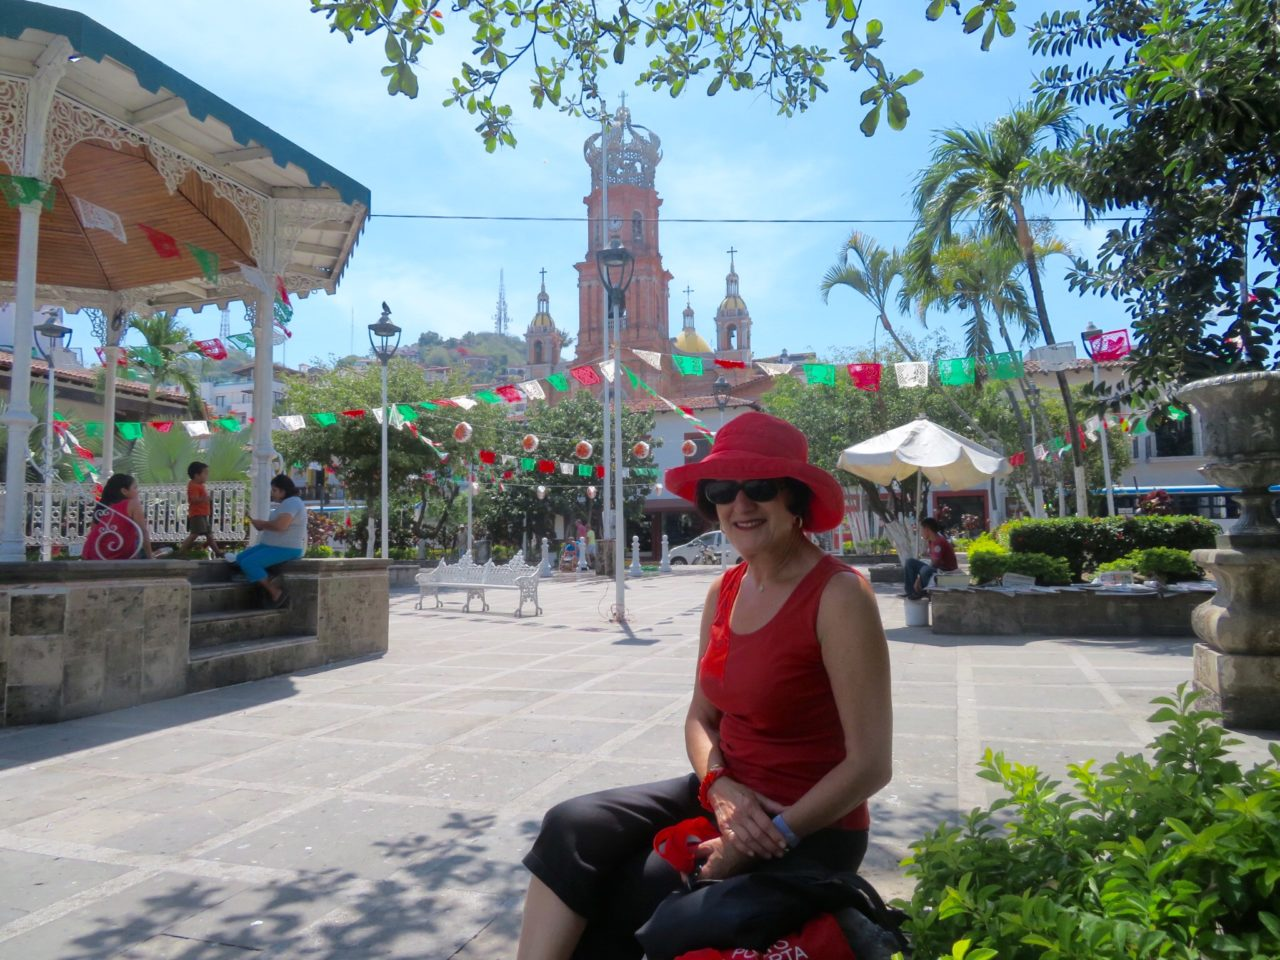 Puerto Vallarta : Relaxing in the zocalo